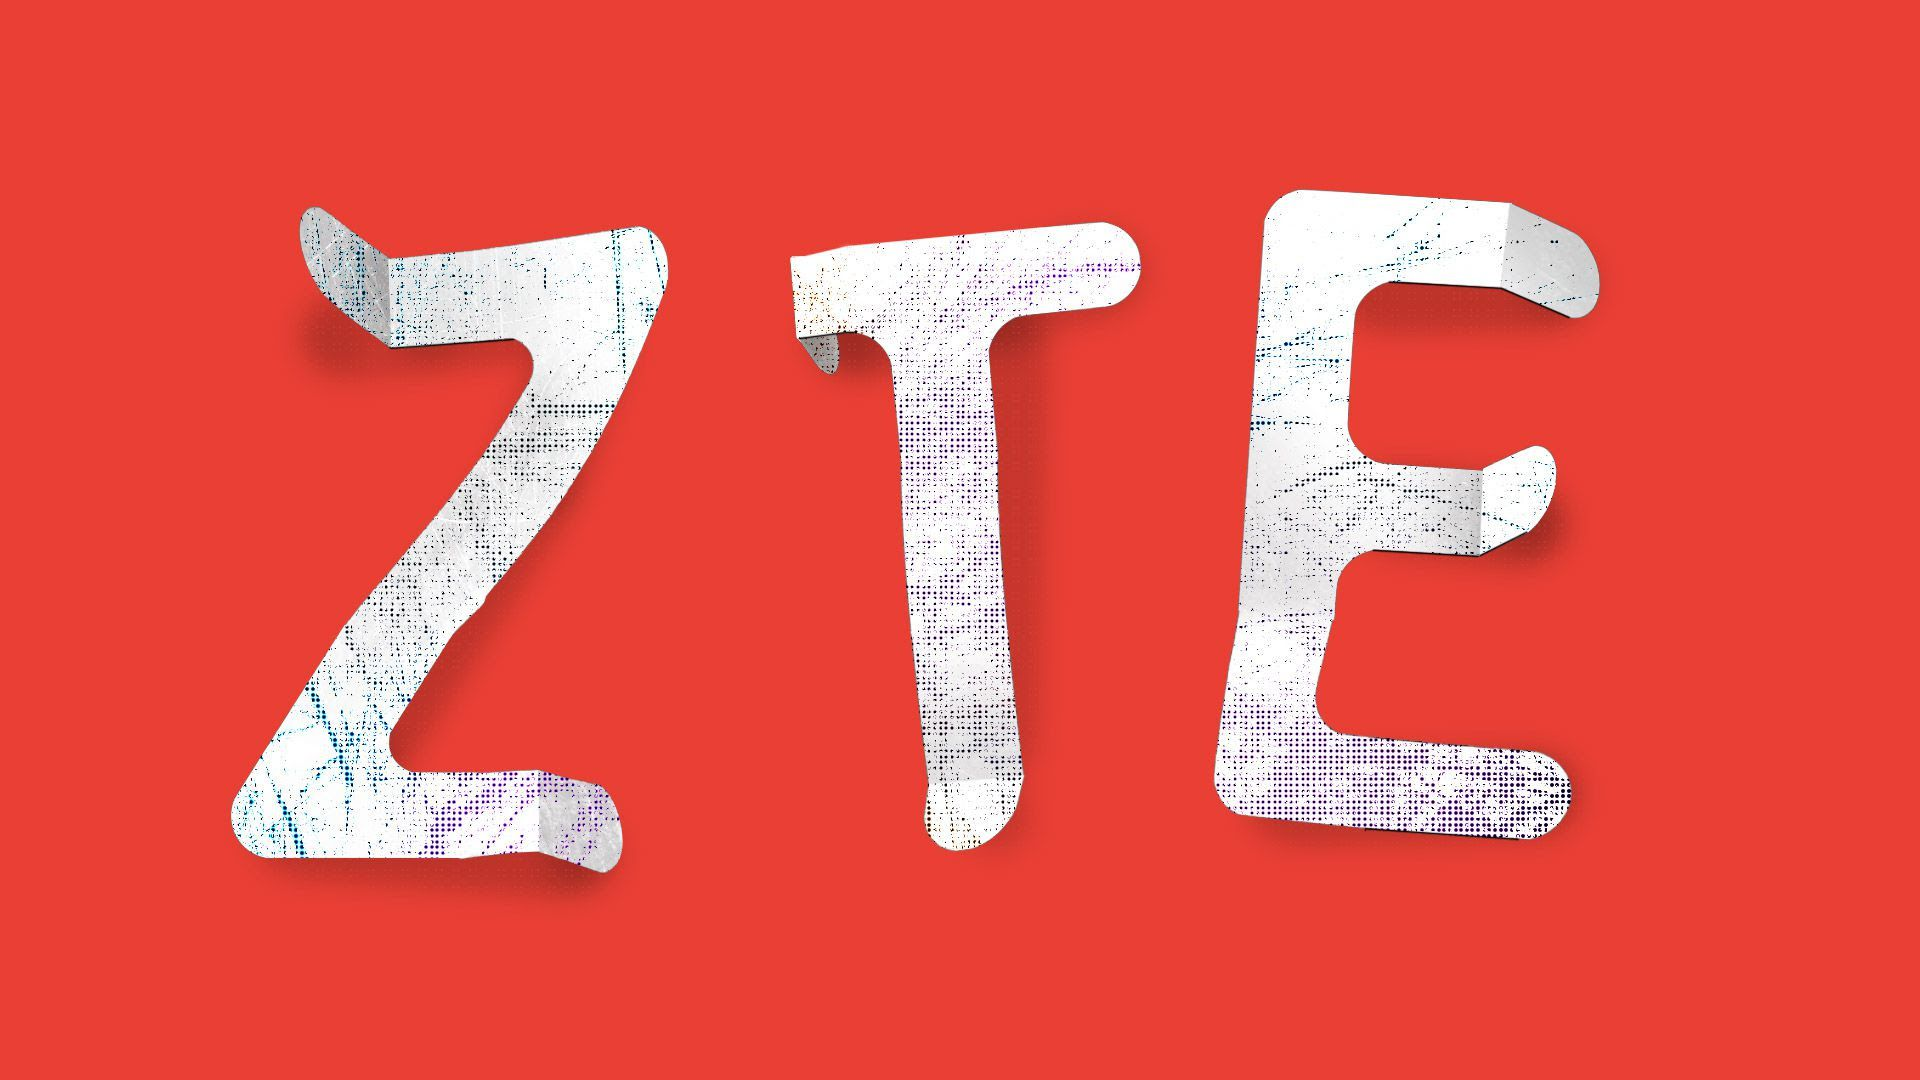 Illustration of ZTE letters crinkled